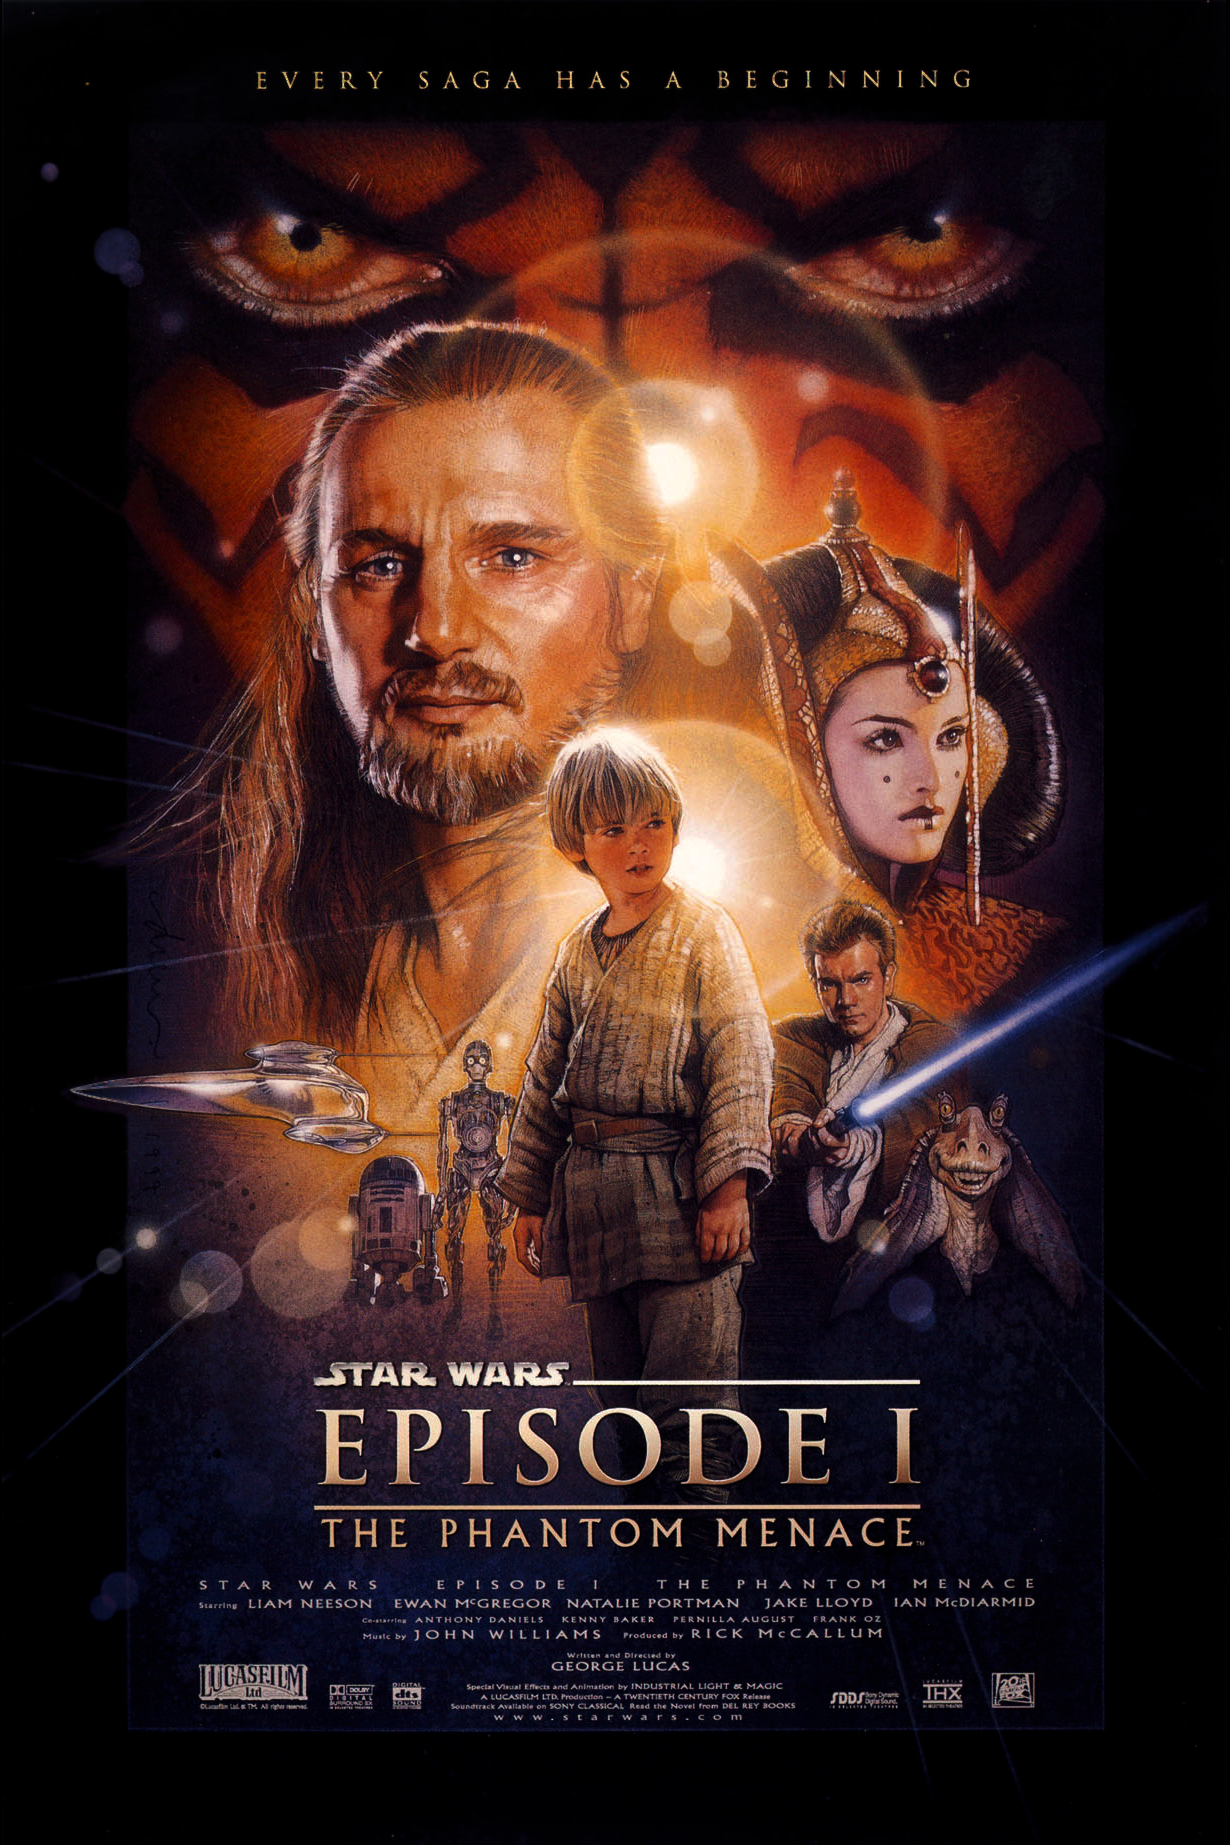 Star Wars: Episode I The Phantom Menace | Wookieepedia